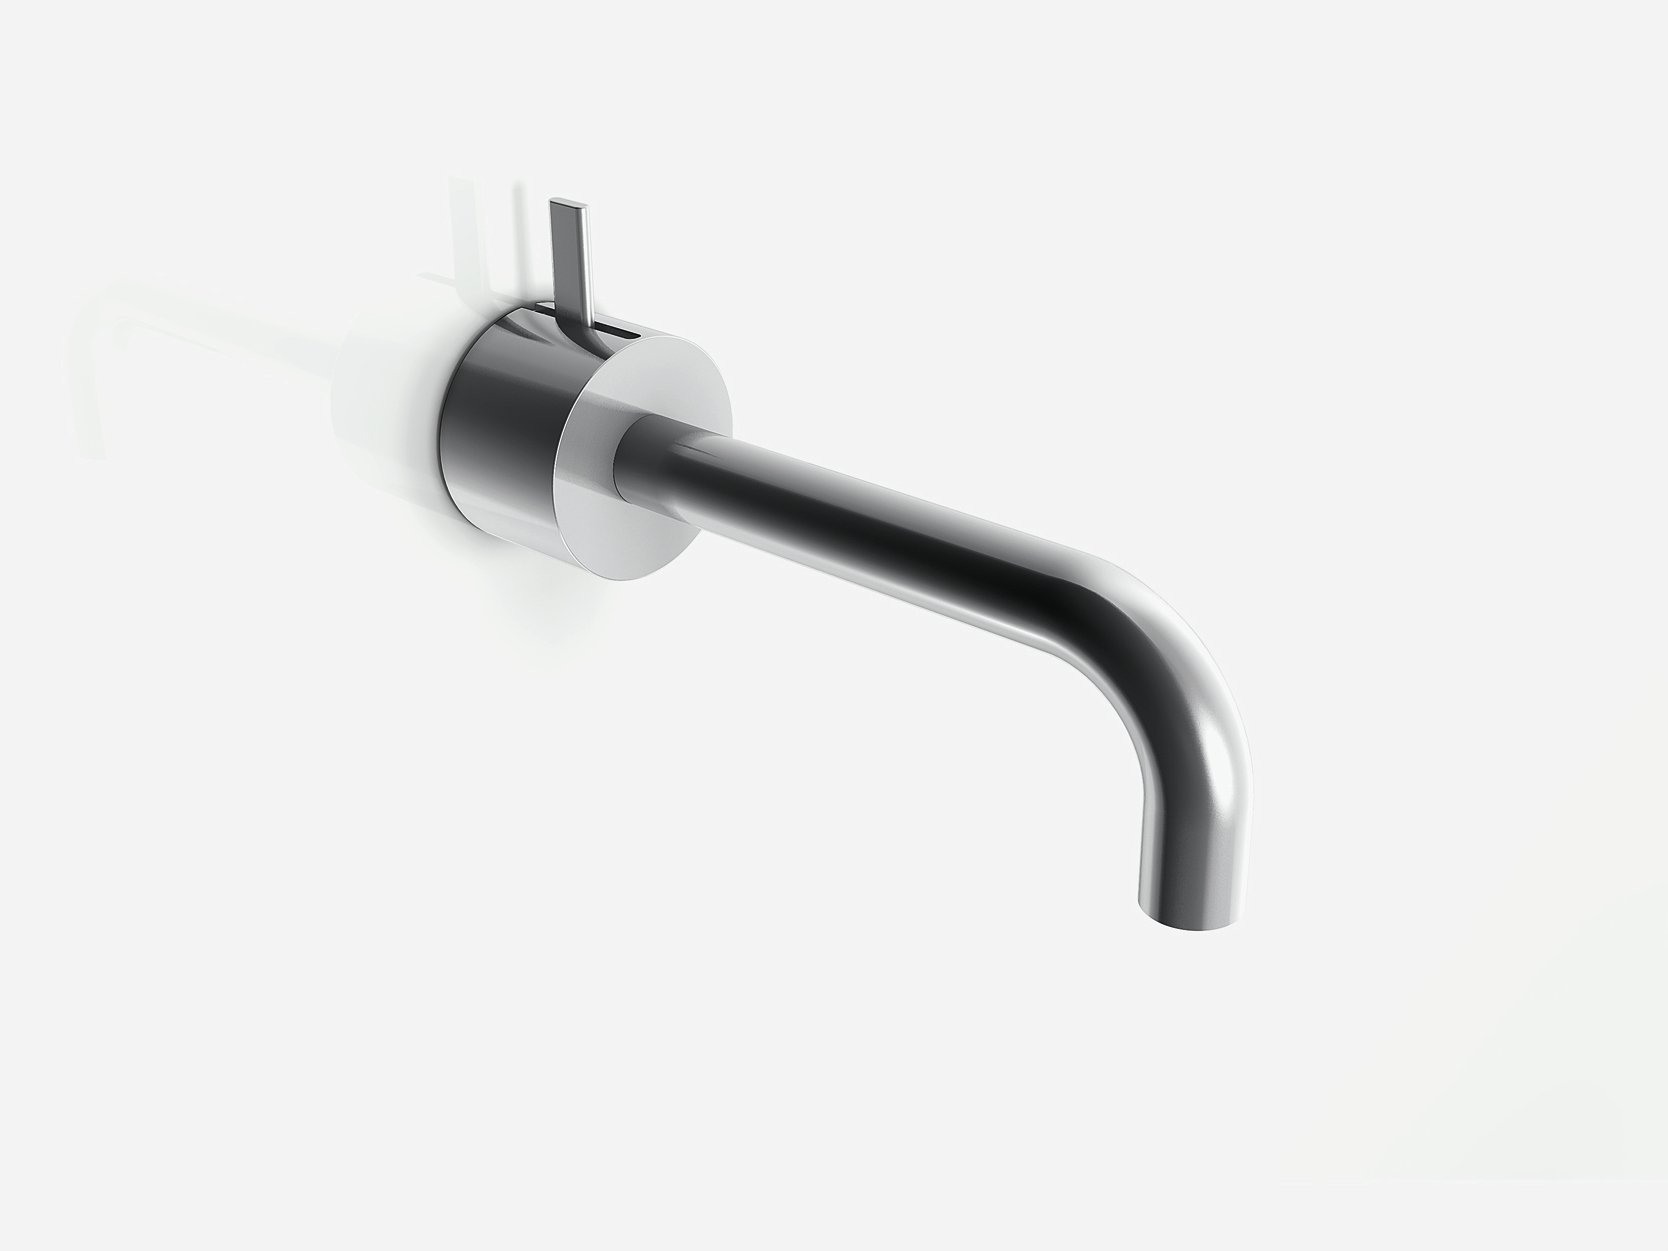 af 21 wall mounted washbasin mixer by aboutwater design. Black Bedroom Furniture Sets. Home Design Ideas